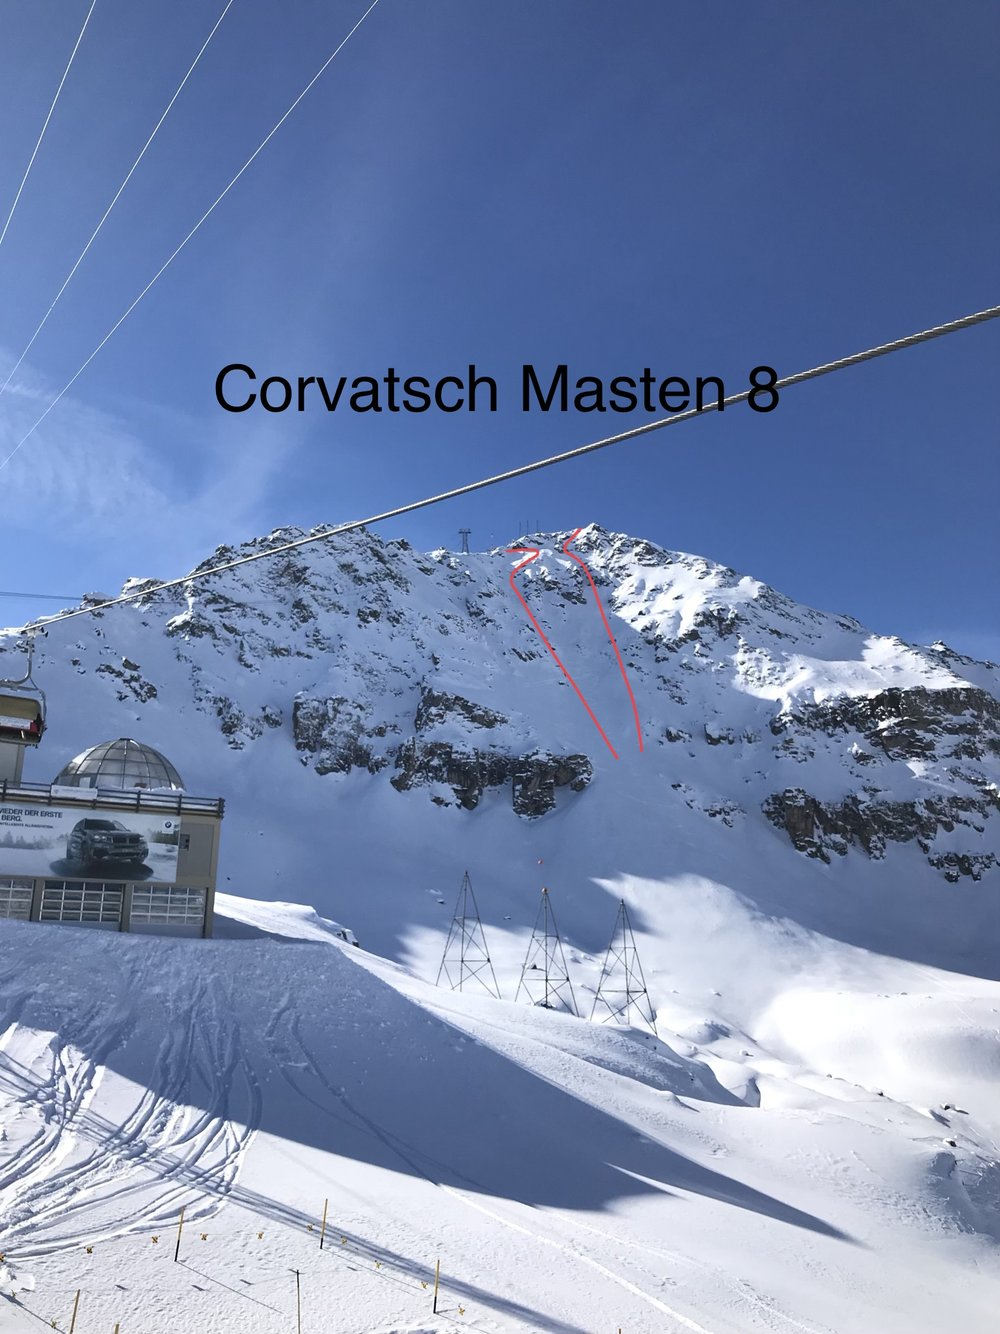 Corvatsch North Face vom Sessellift